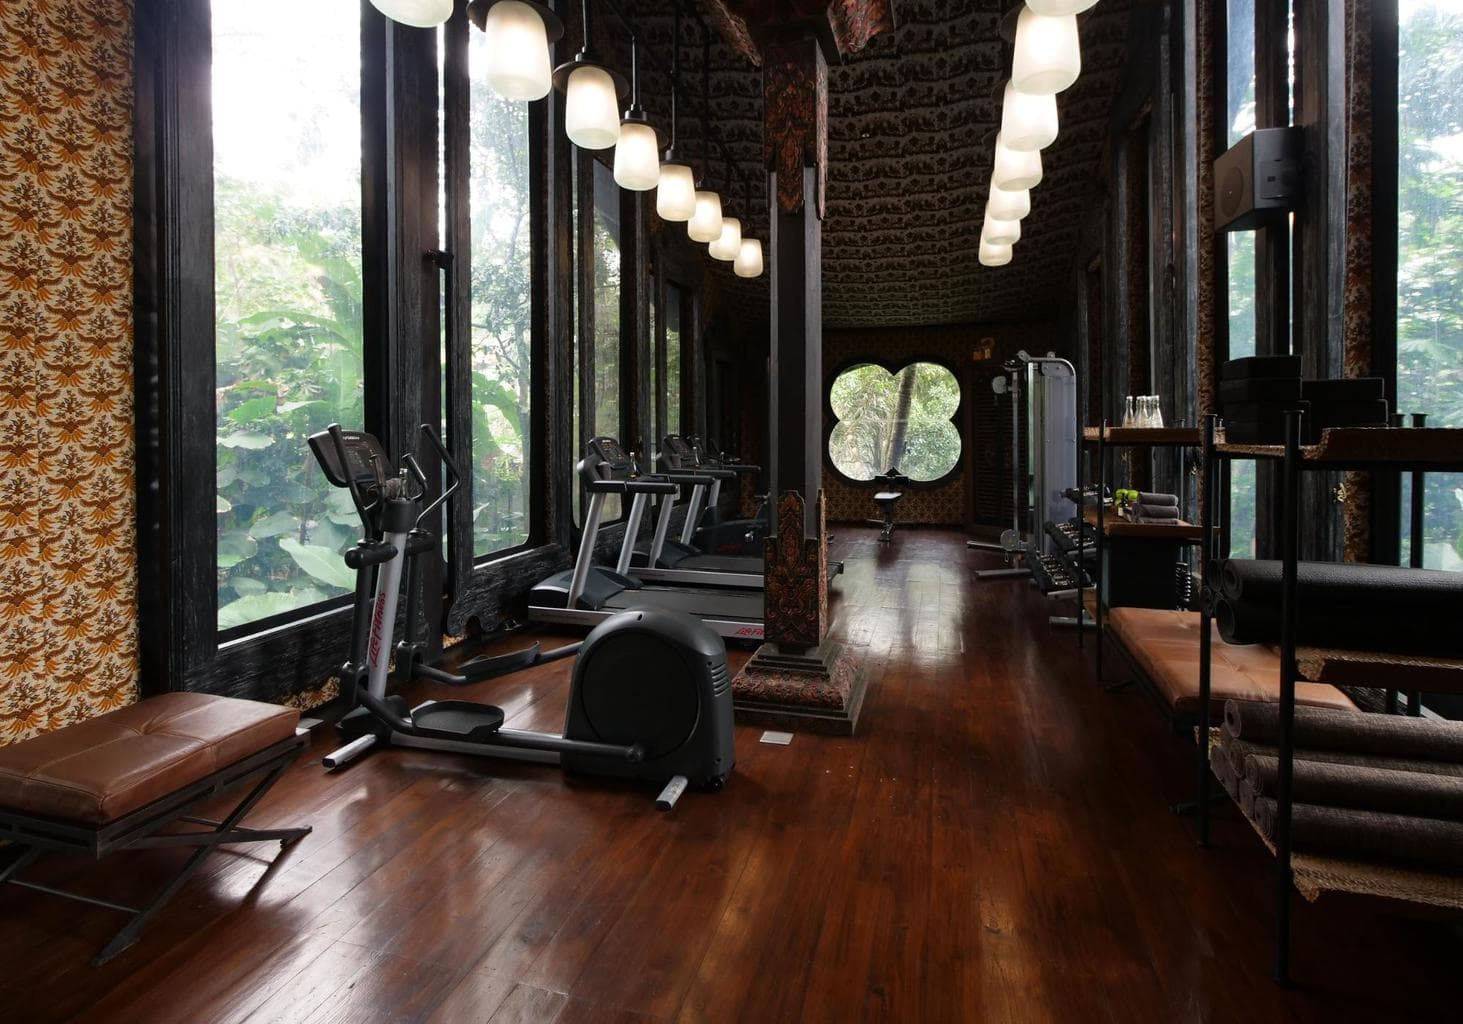 The Armoury, or gym, at Capella Ubud